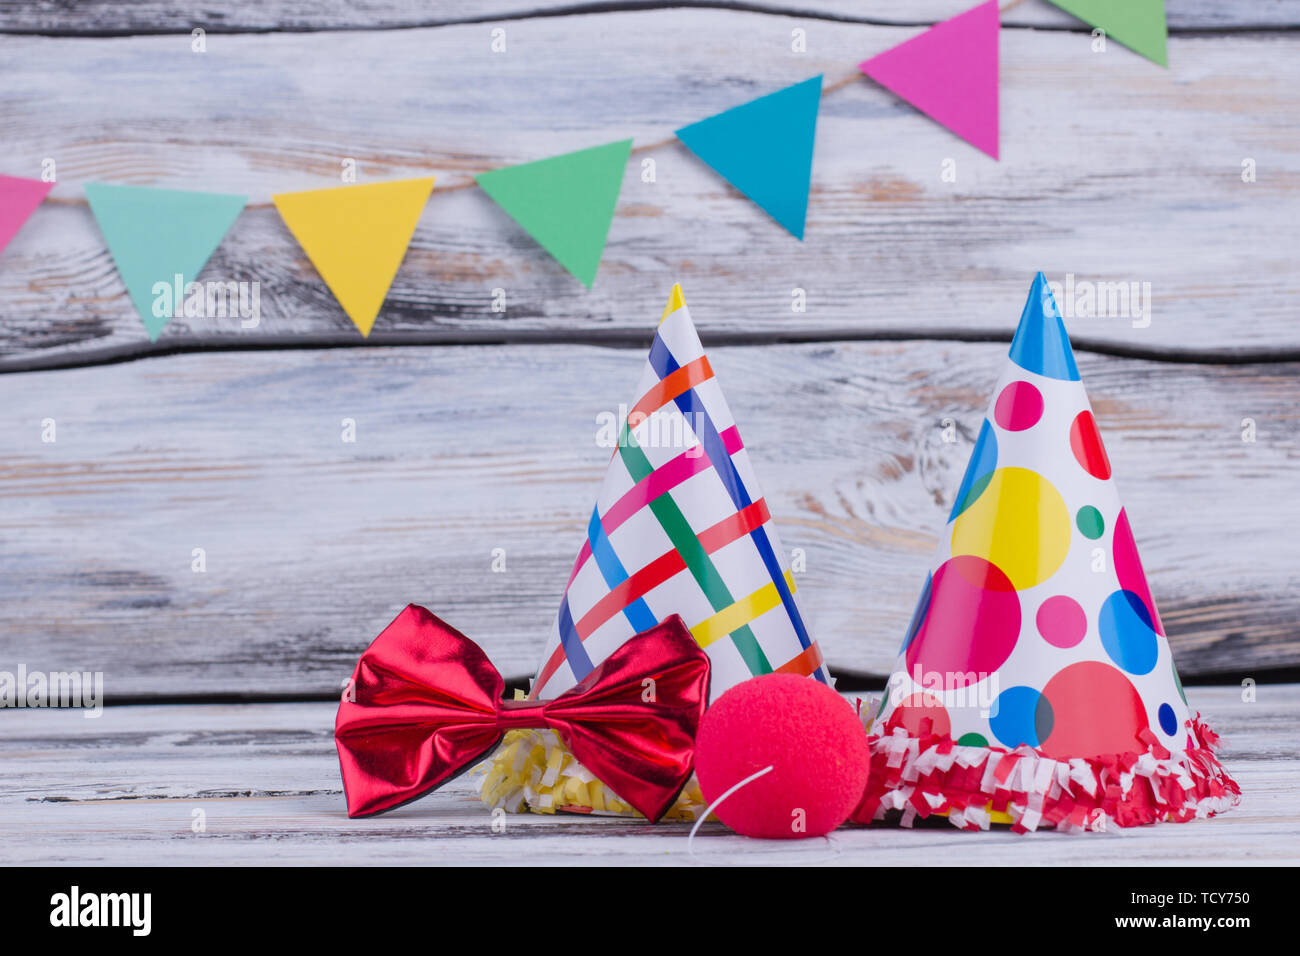 Party hats and other stuff on wooden background. Colorful